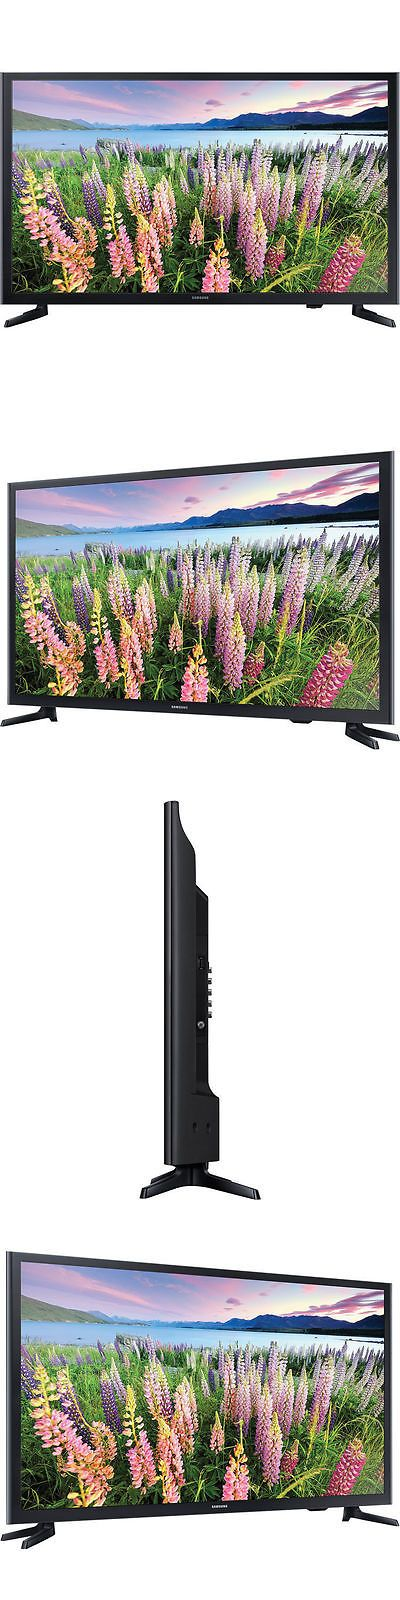 Home Audio: Samsung Un32j5003 32-Inch 1080P Led Tv (2015 Model) Brand New BUY IT NOW ONLY: $214.36